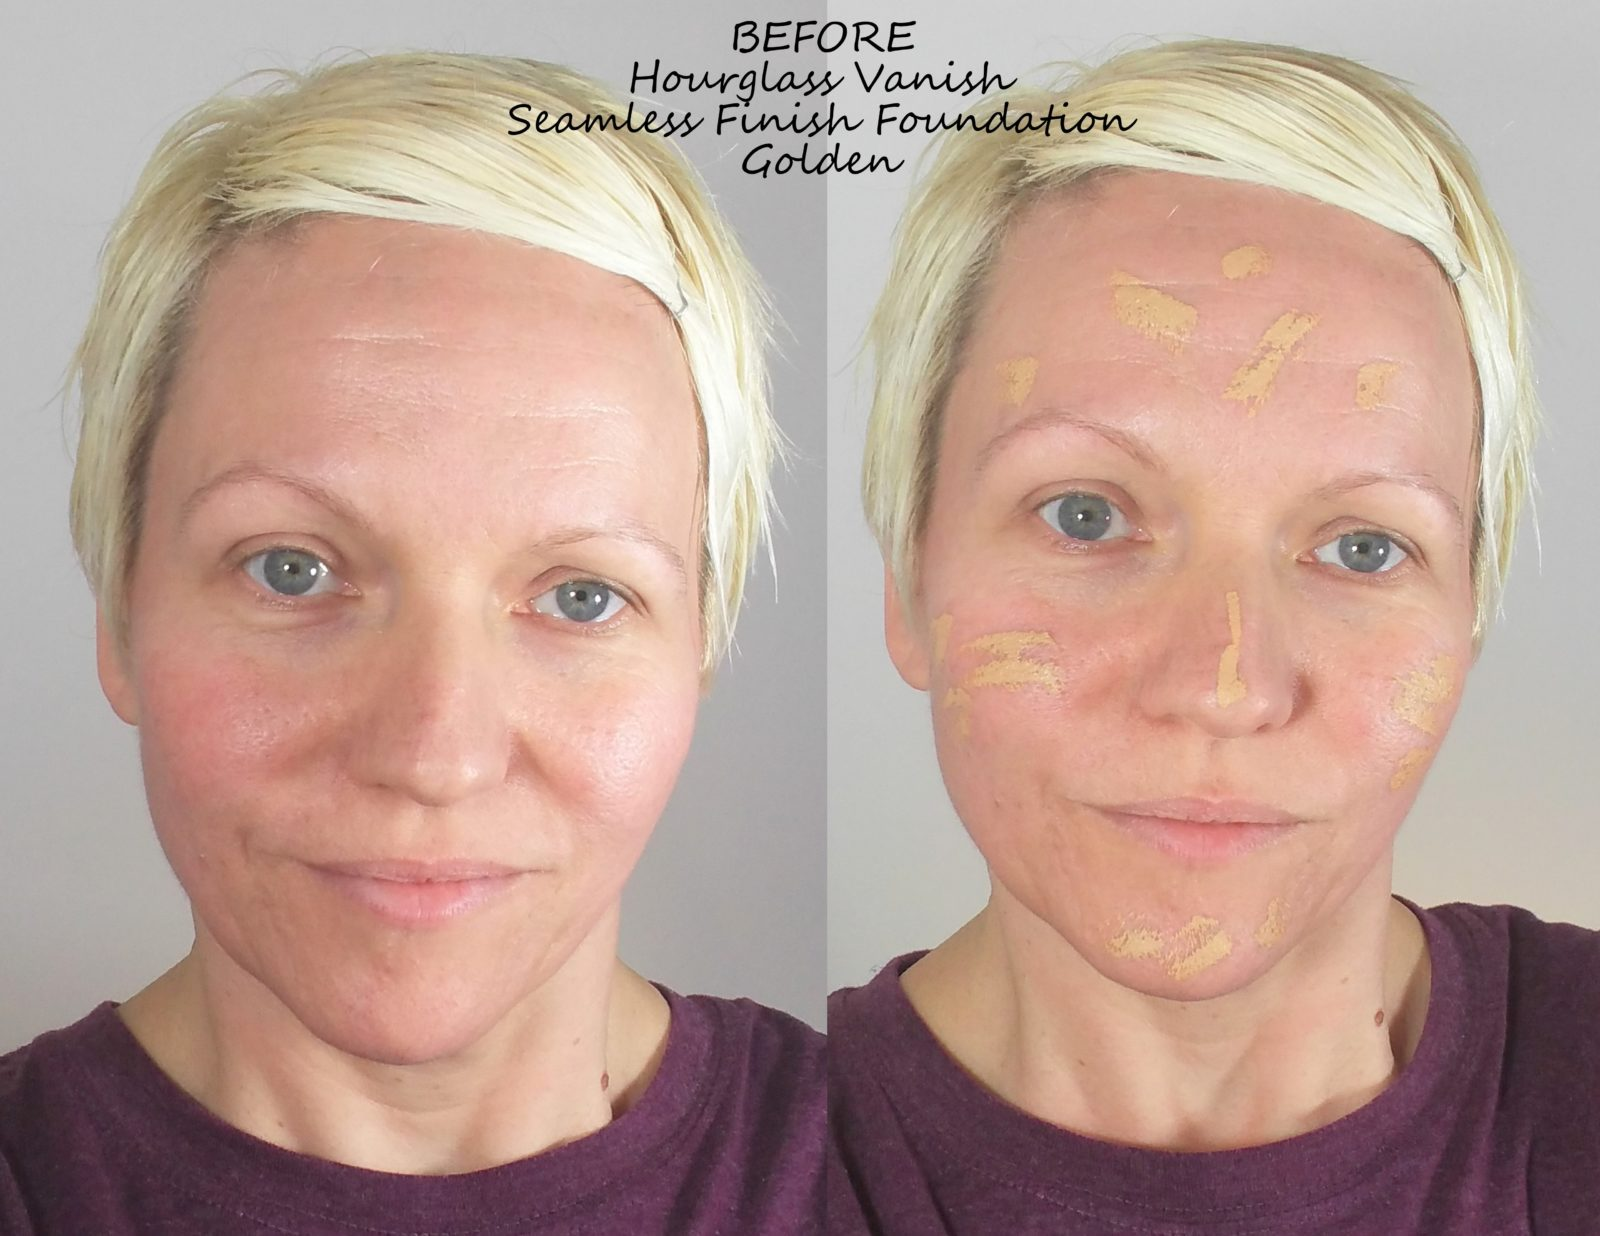 Hourglass Vanish Foundation Before and After Photos